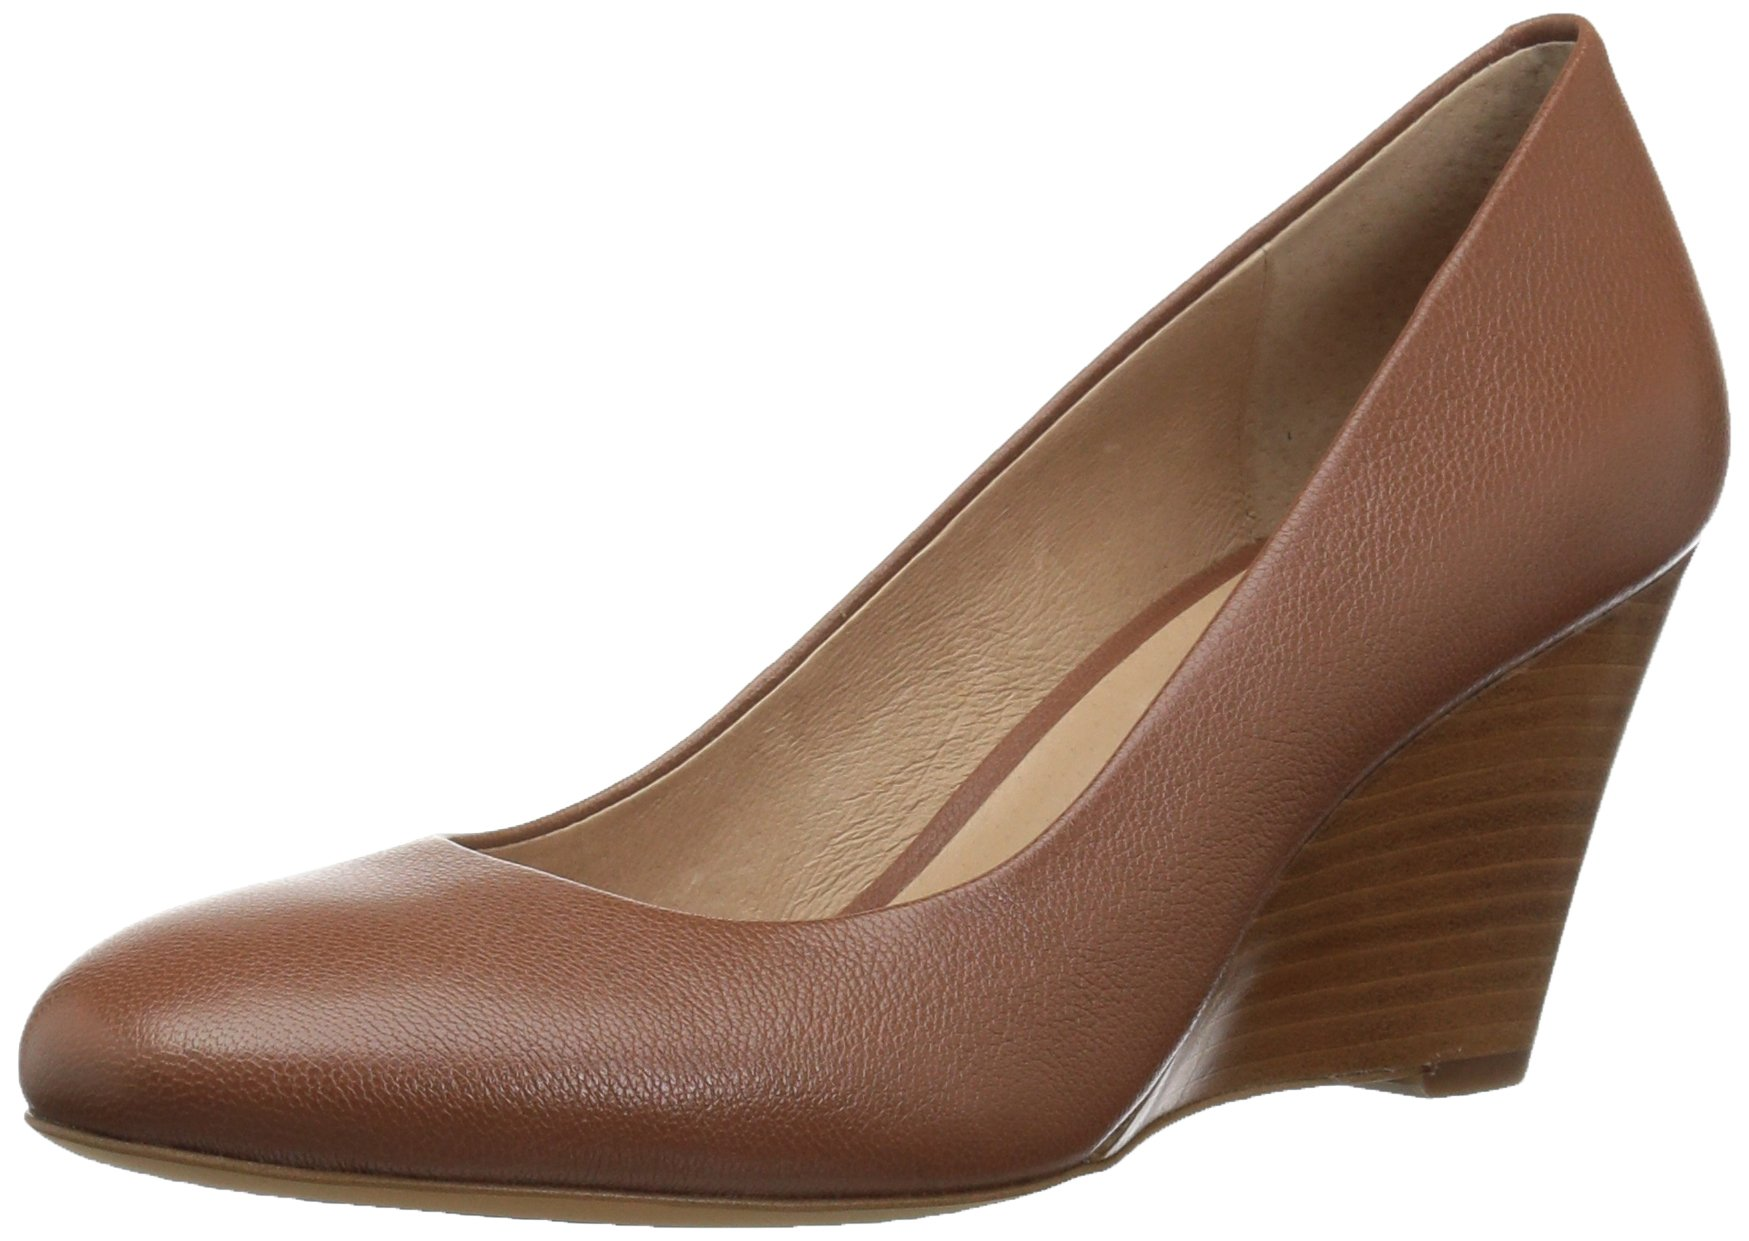 206 Collective Women's Battelle Closed-Toe Covered Wedge Pump, Cognac Leather, 9 C/D US